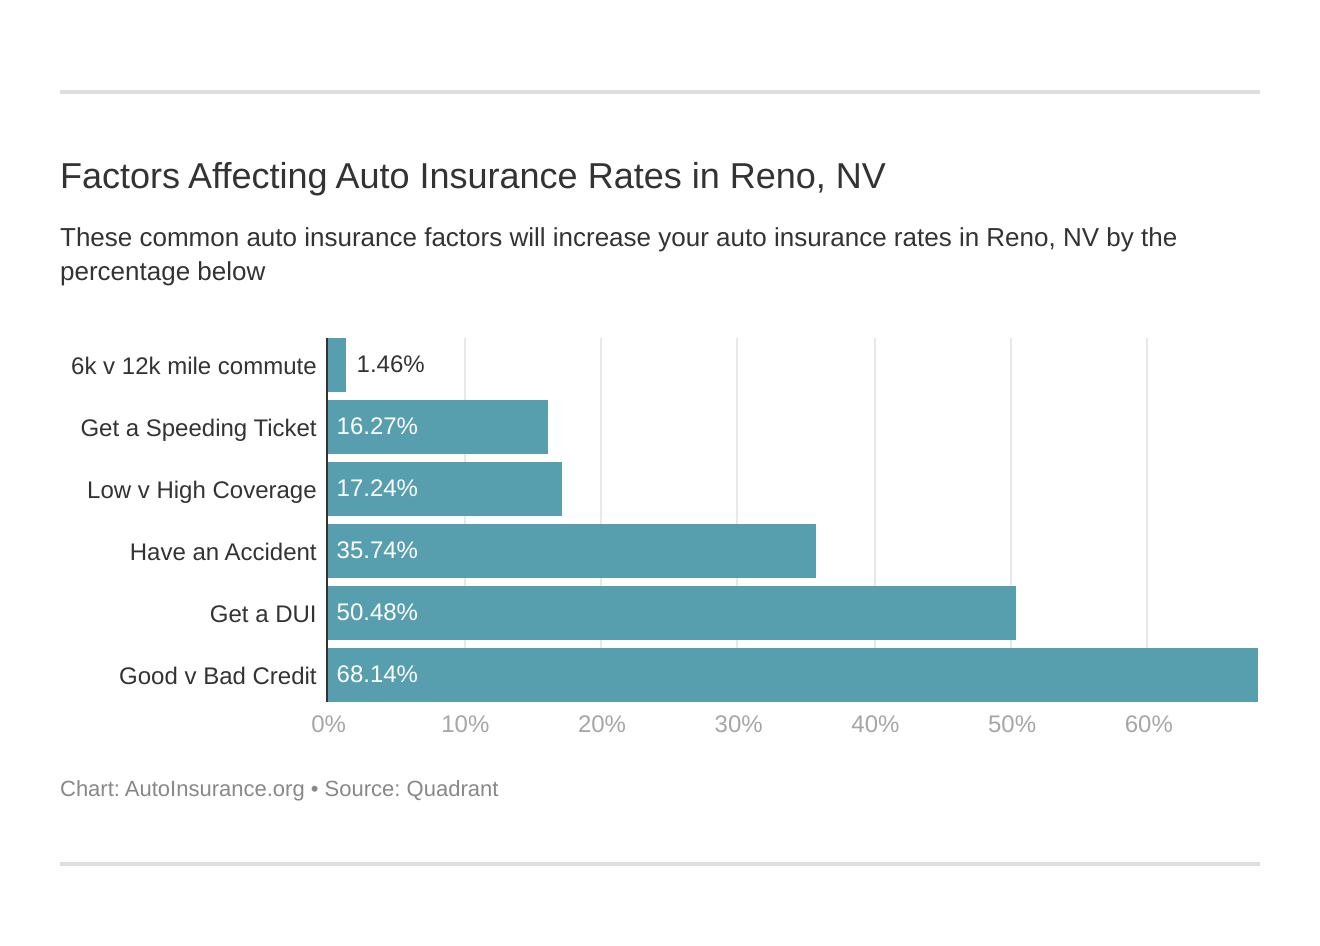 Factors Affecting Auto Insurance Rates in Reno, NV